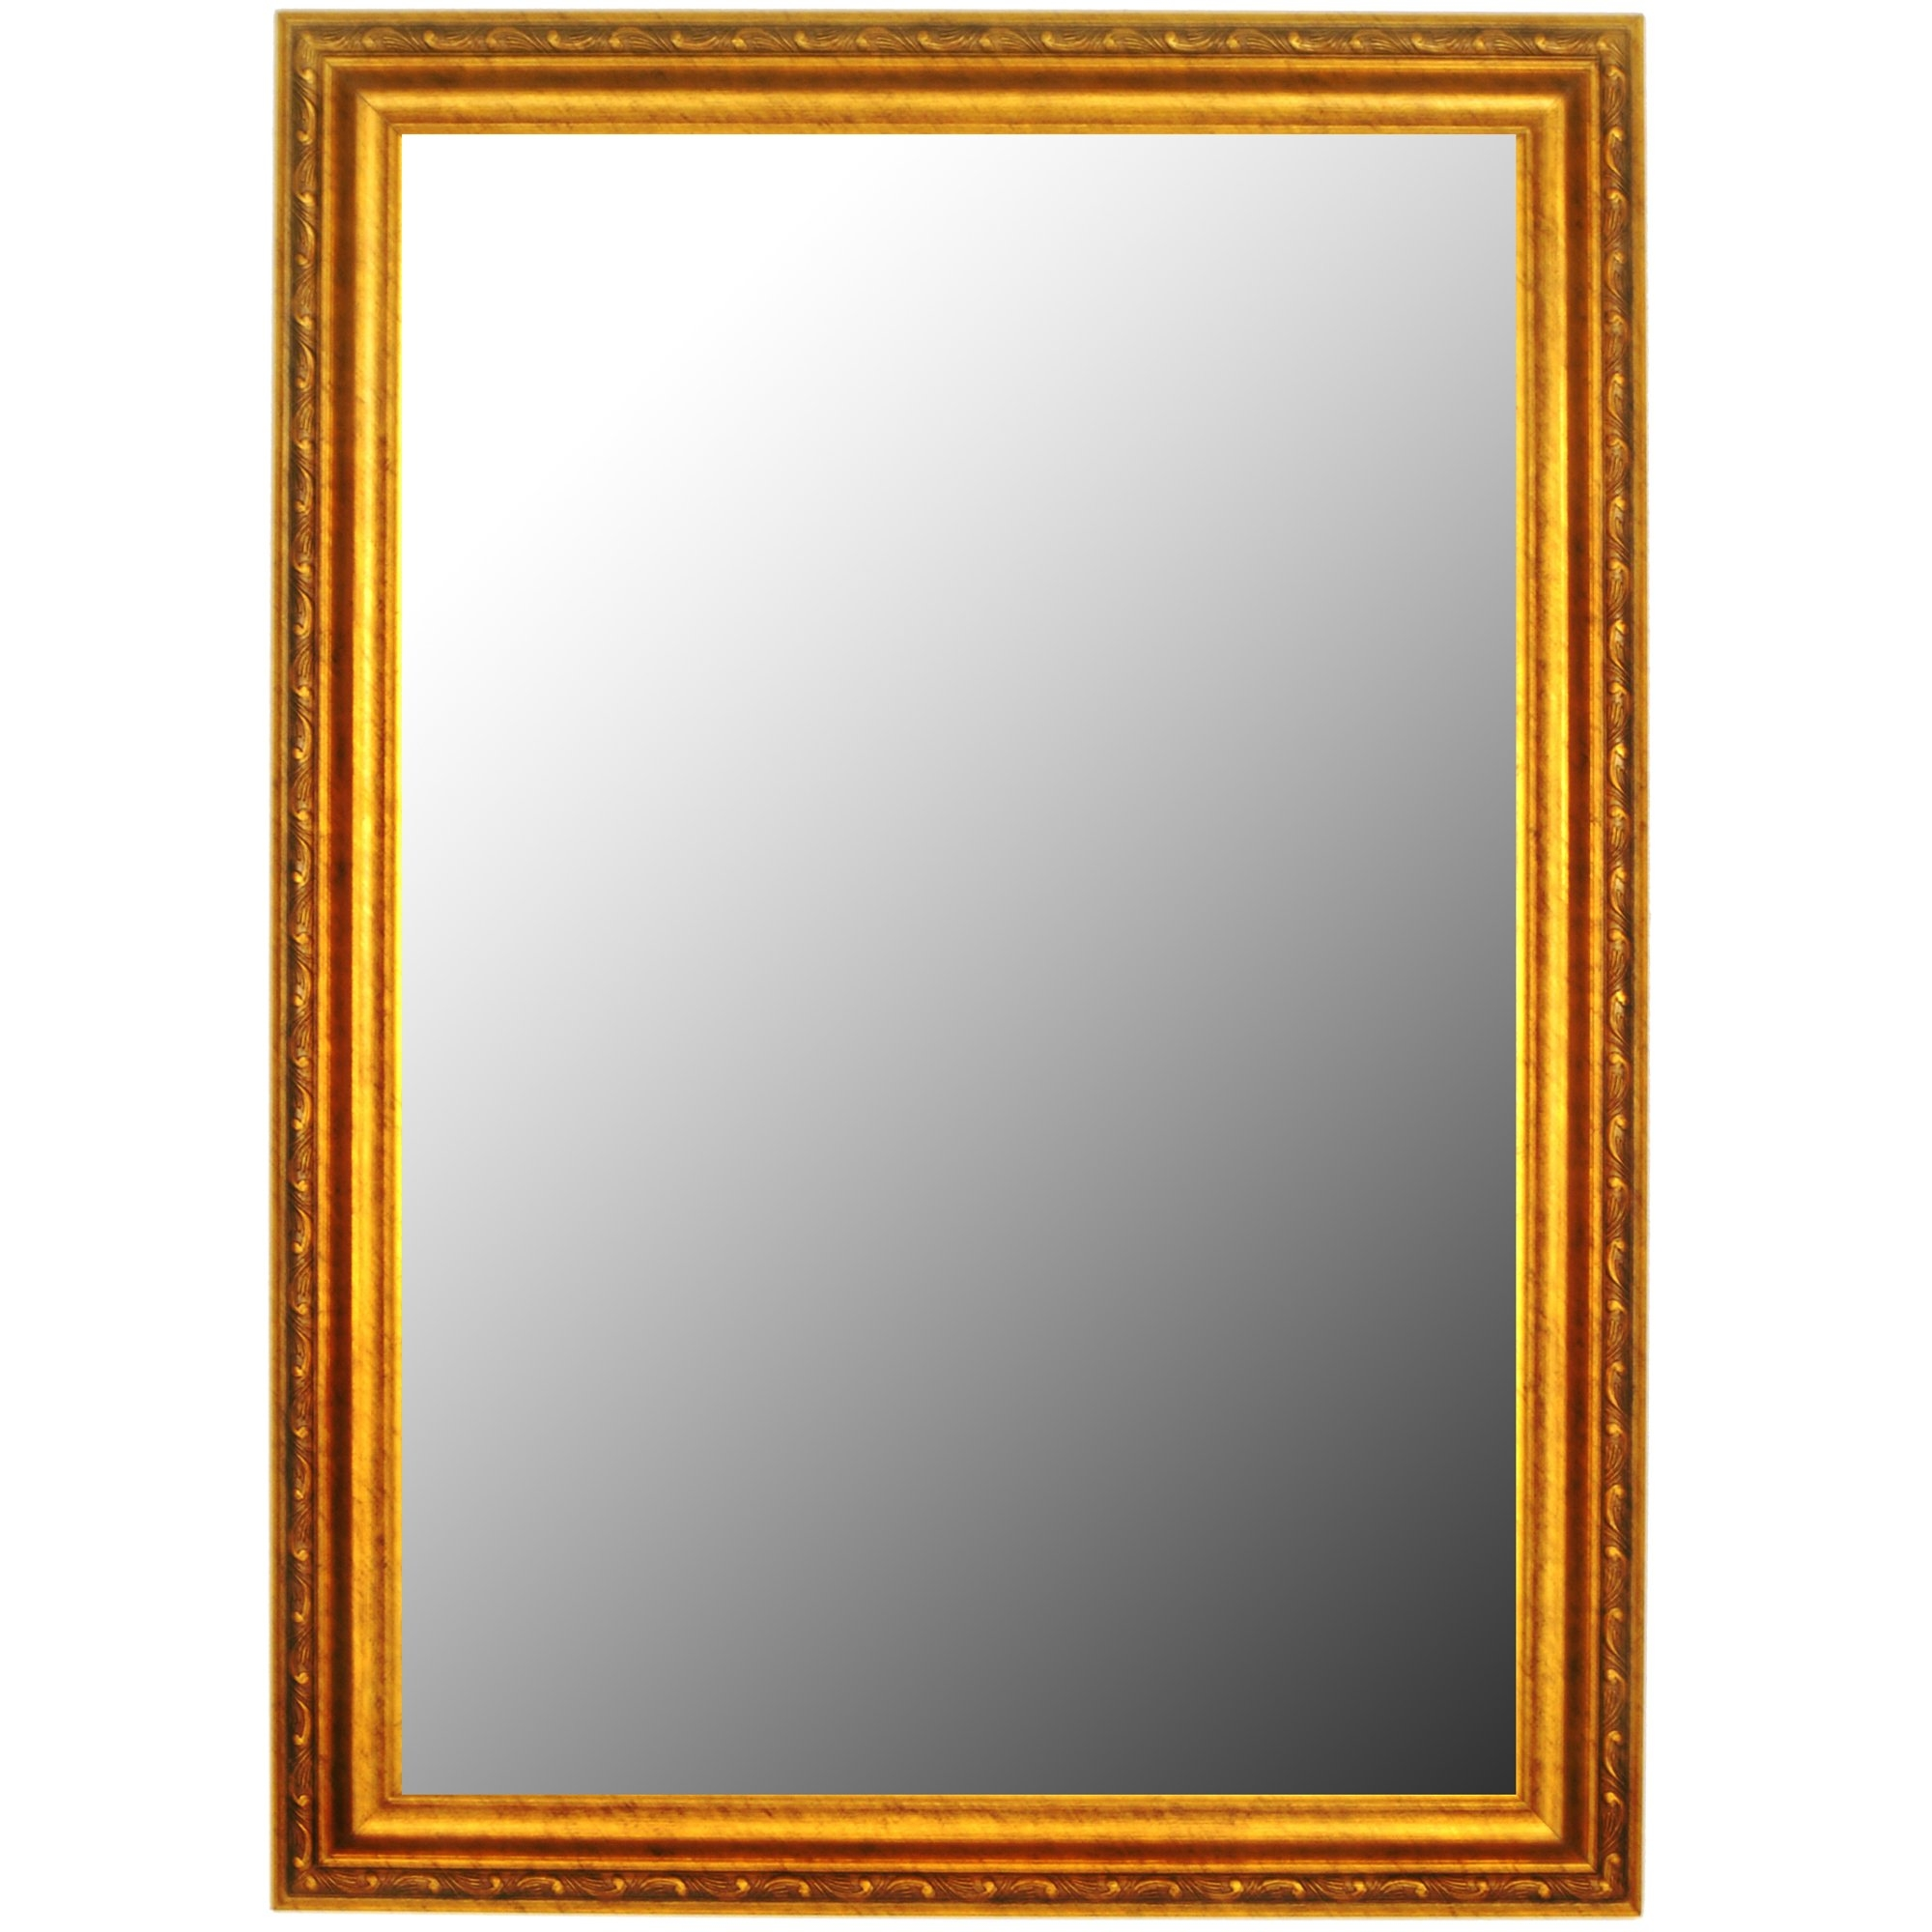 Second Look Mirrors Louis Xii French Gold Wall Mirror Reviews Intended For Gold French Mirror (Image 15 of 15)